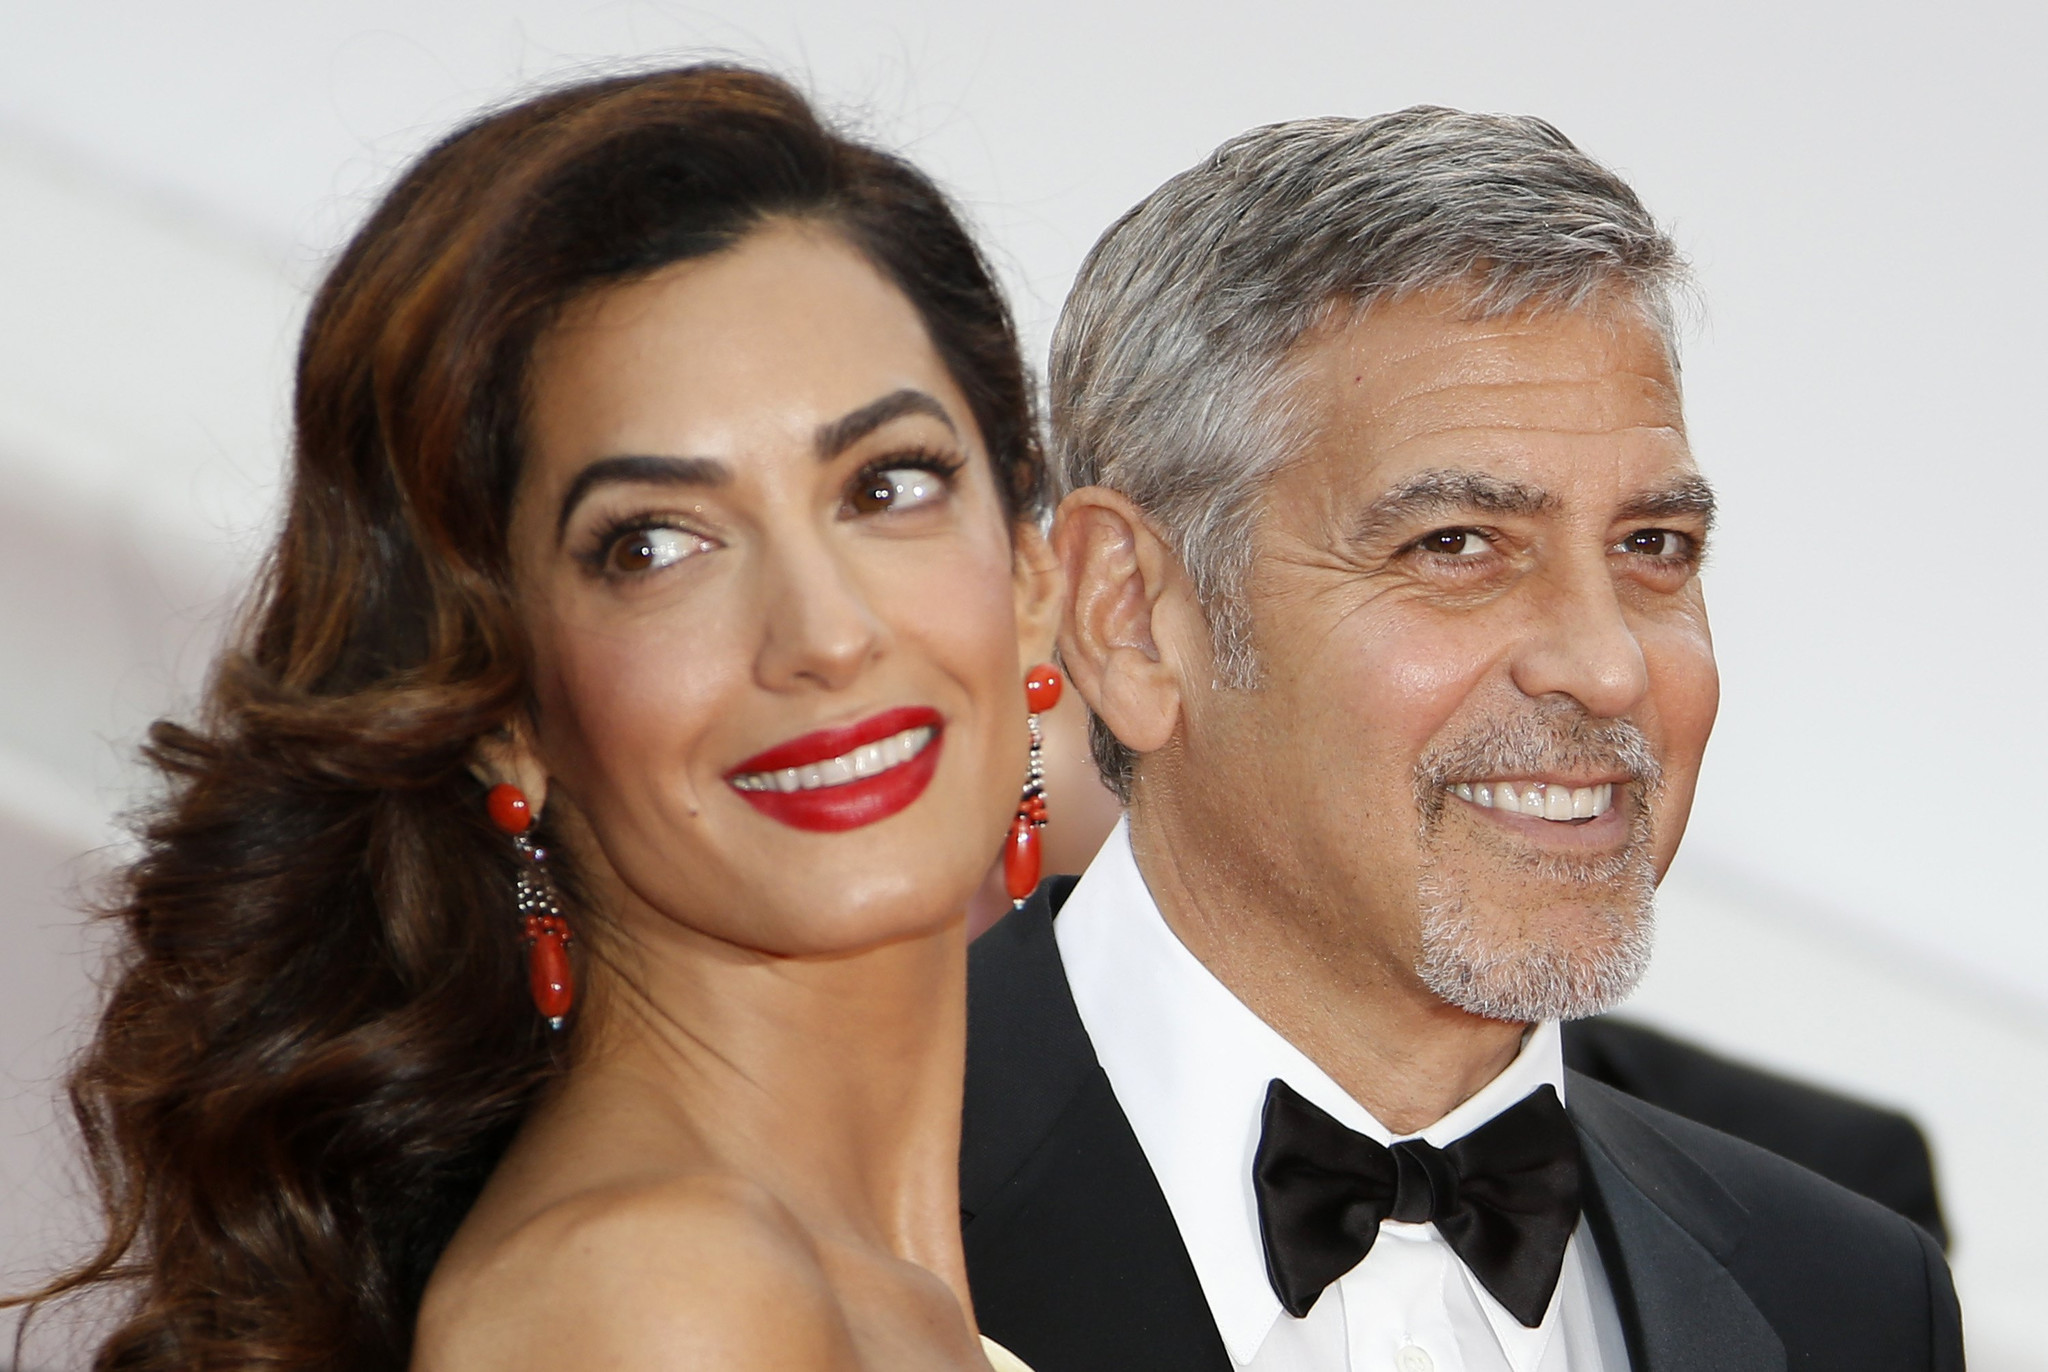 George and Amal Clooney donate $1m to combat United States rightwing extremism